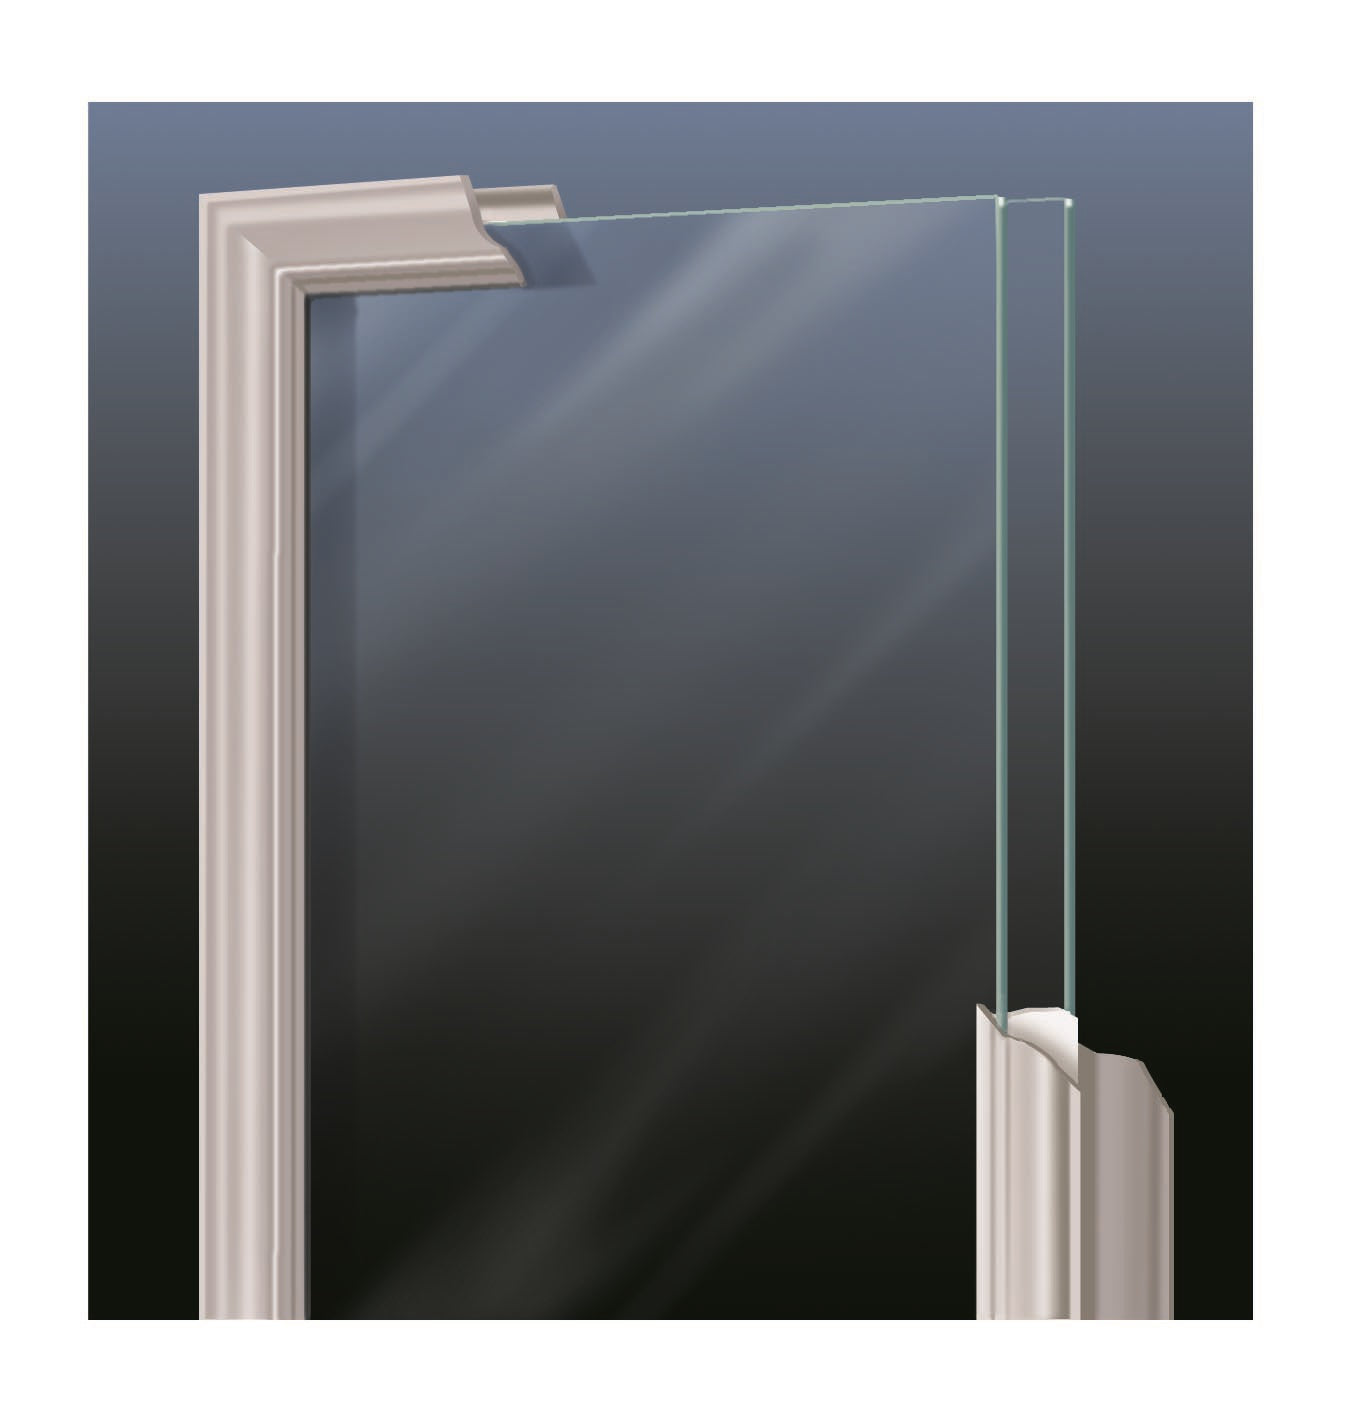 "Clear 1 Lite Glass and Frame Kit (NARROW Half Lite 20"" x 36"" Glass Size)"